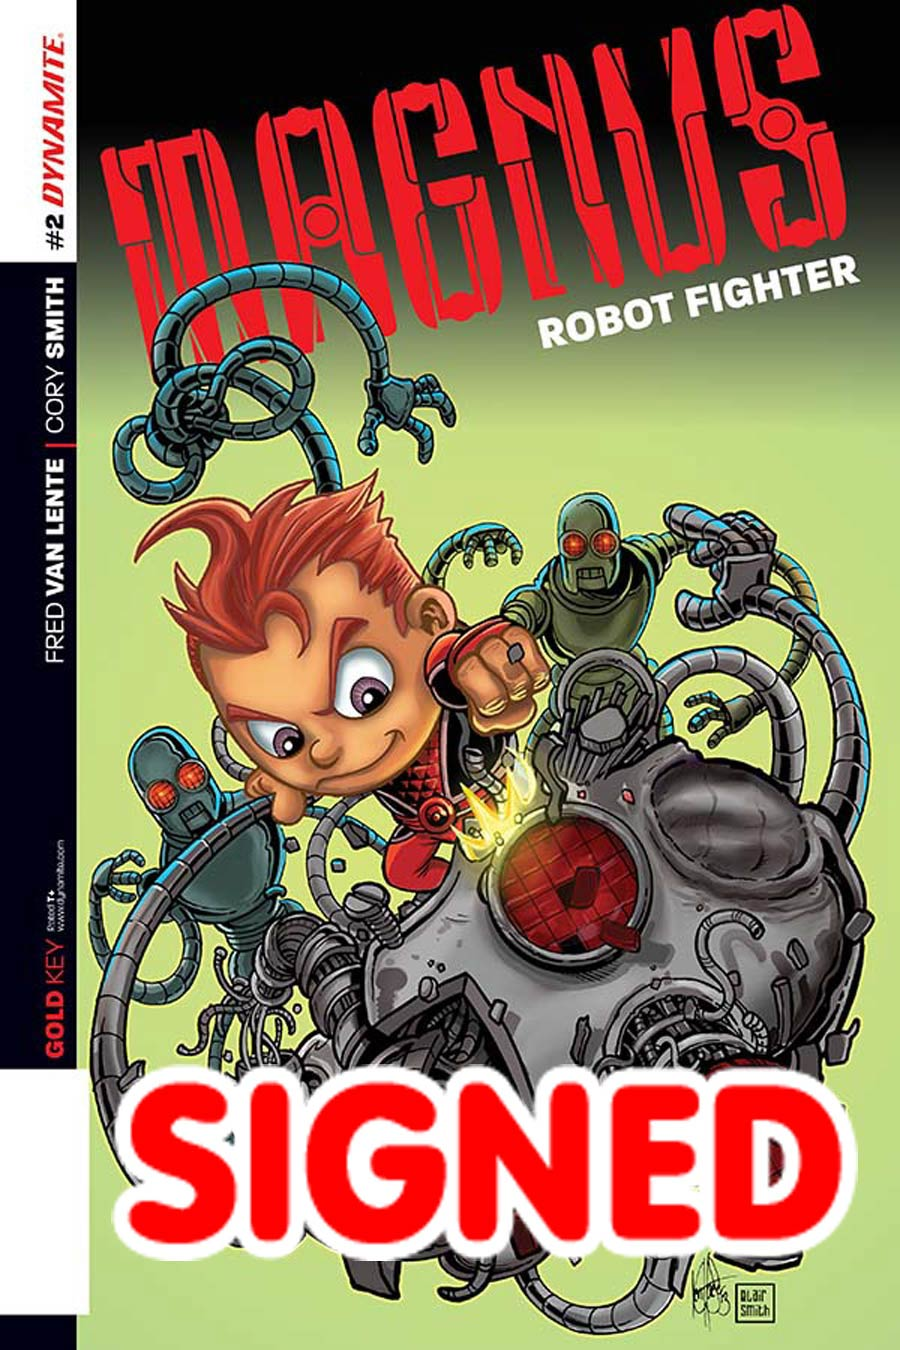 Magnus Robot Fighter Vol 4 #2 Cover F Incentive Ken Haeser Lil Magnus Variant Cover Signed By Fred Van Lente